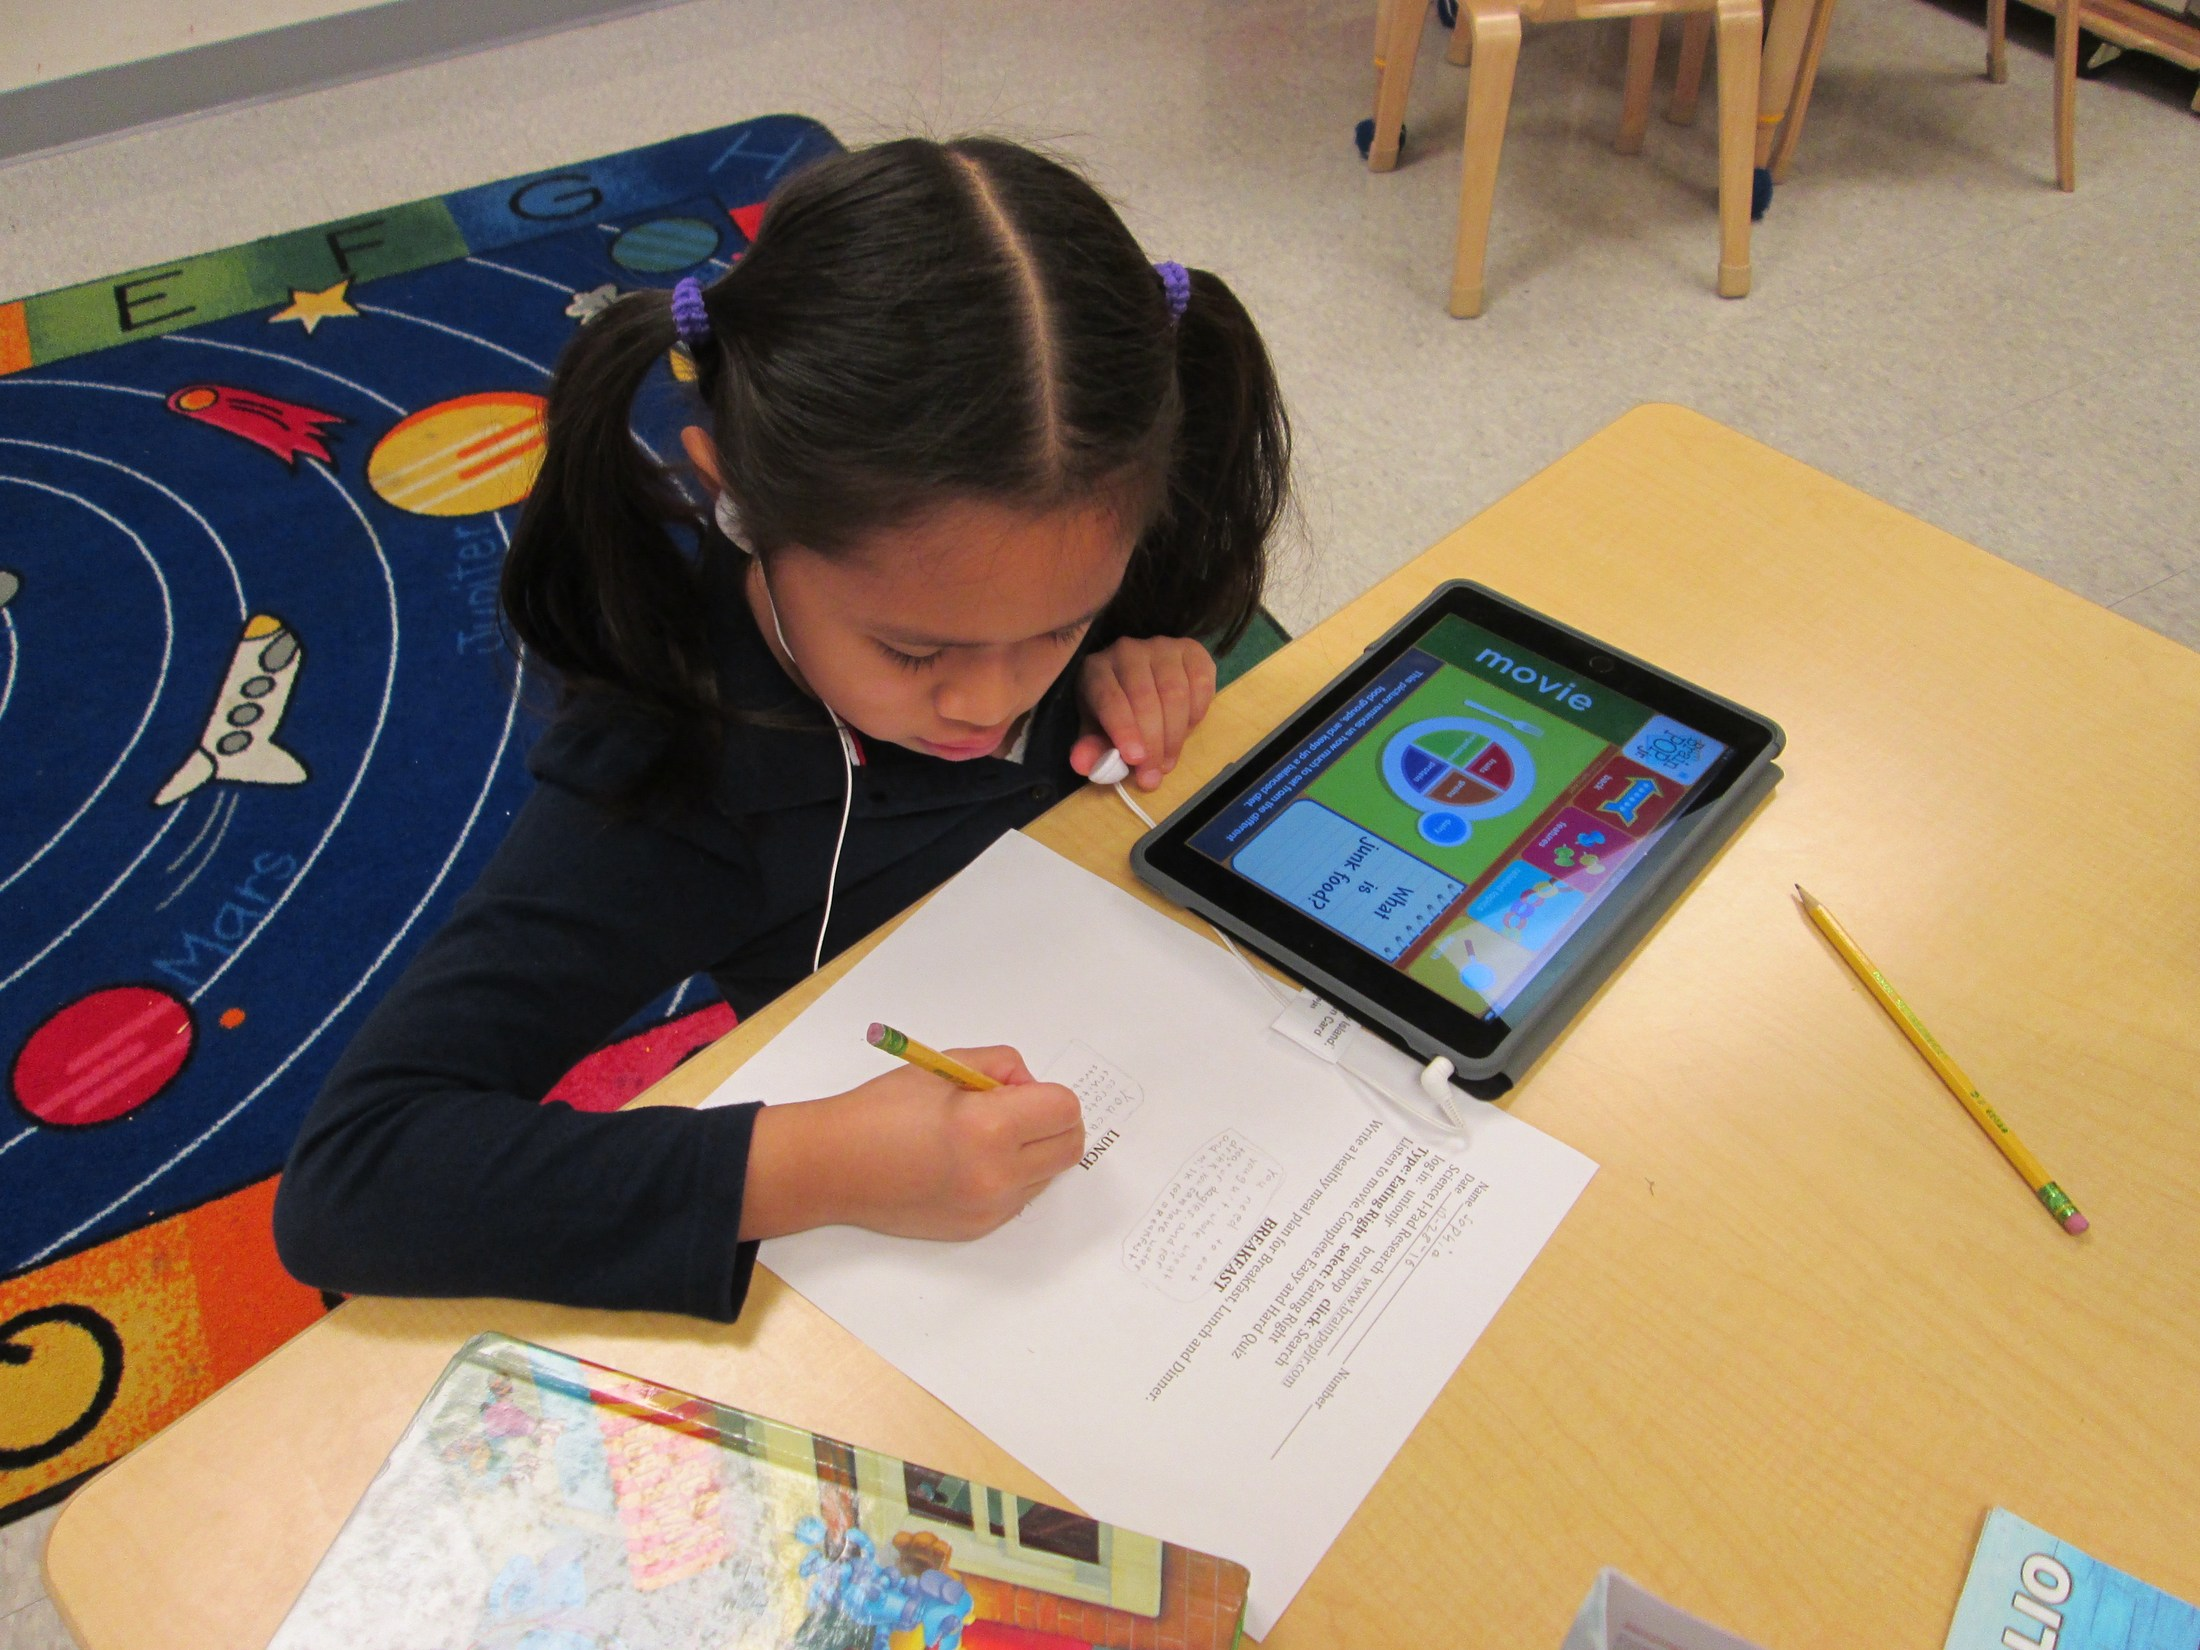 girl working with ipad and activity sheet